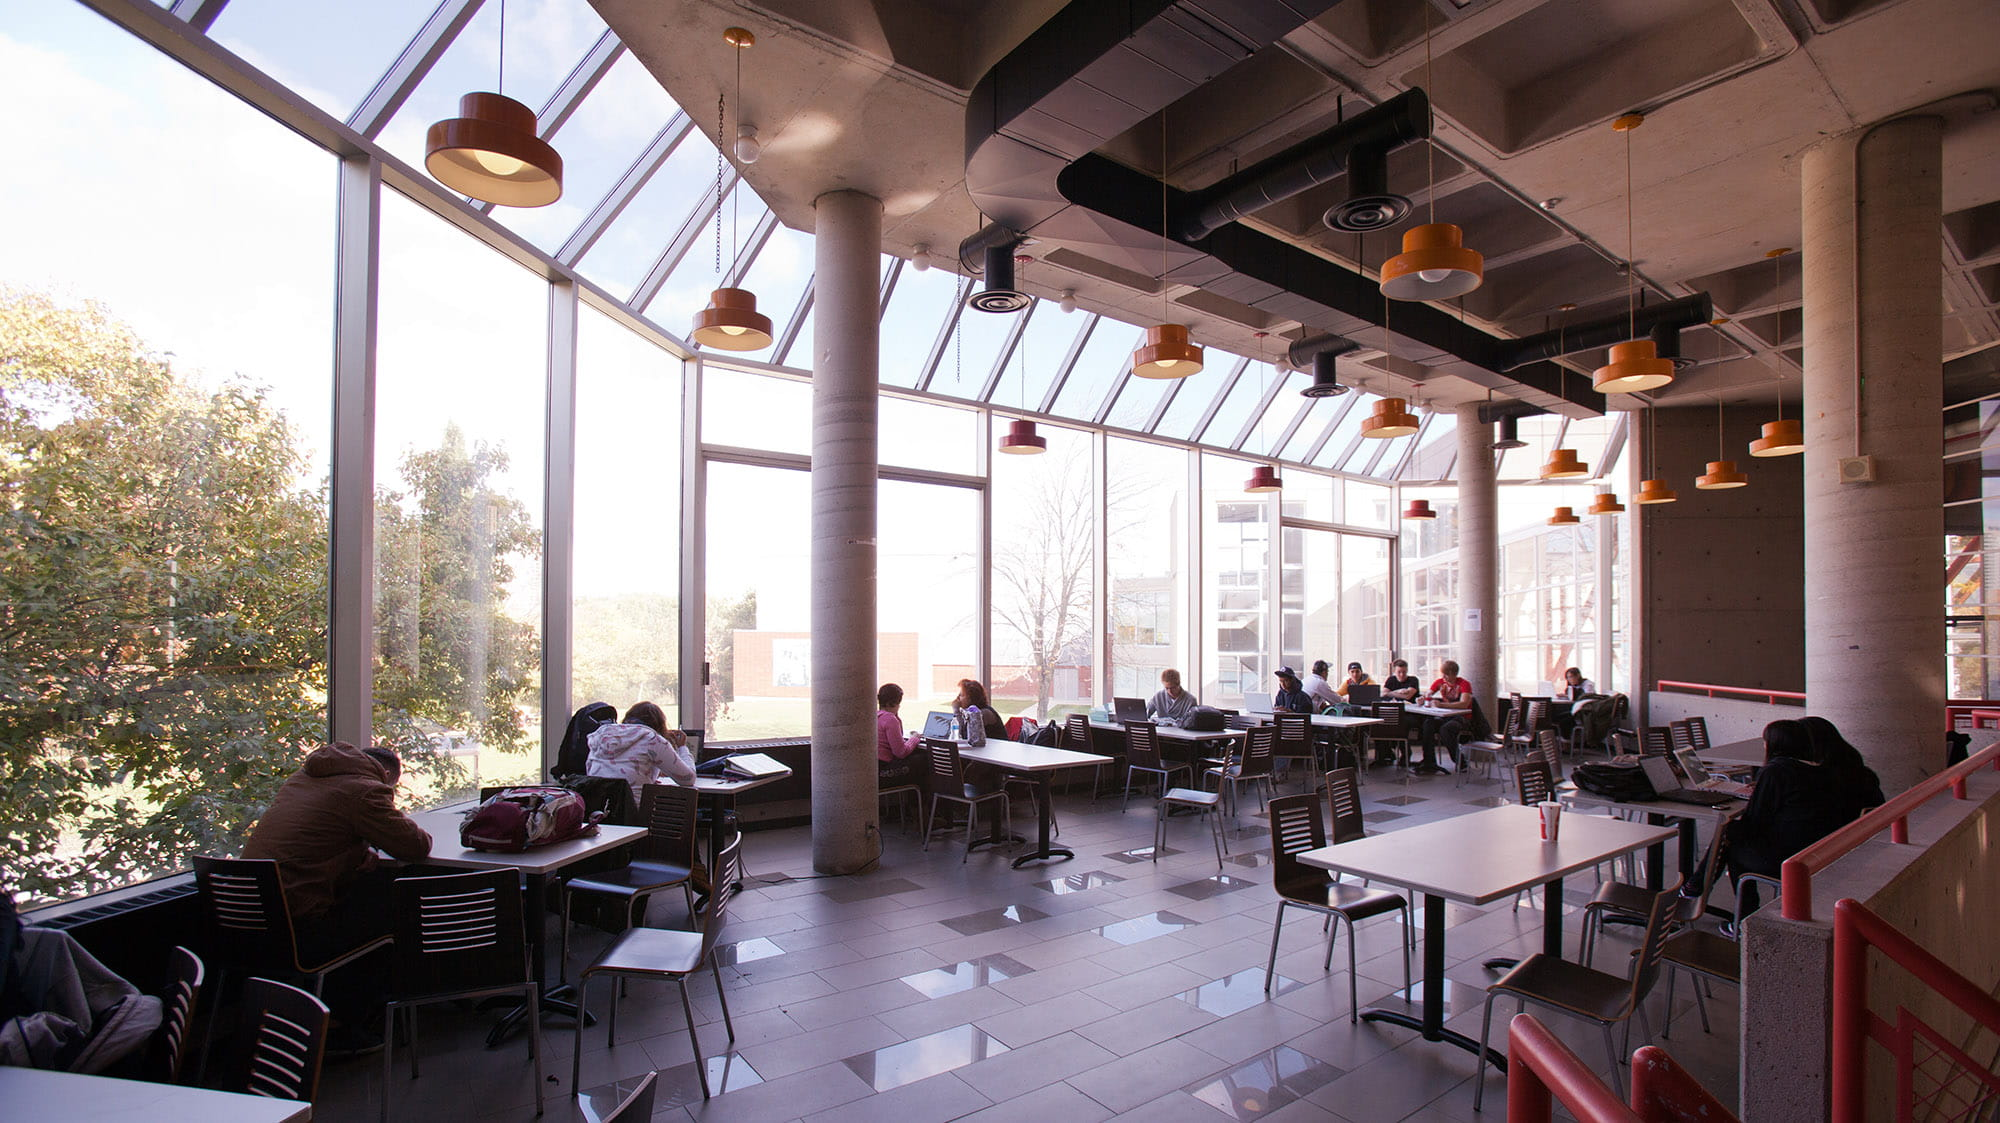 Students eating at tables in the cafeteria beside a wall of large bright windows